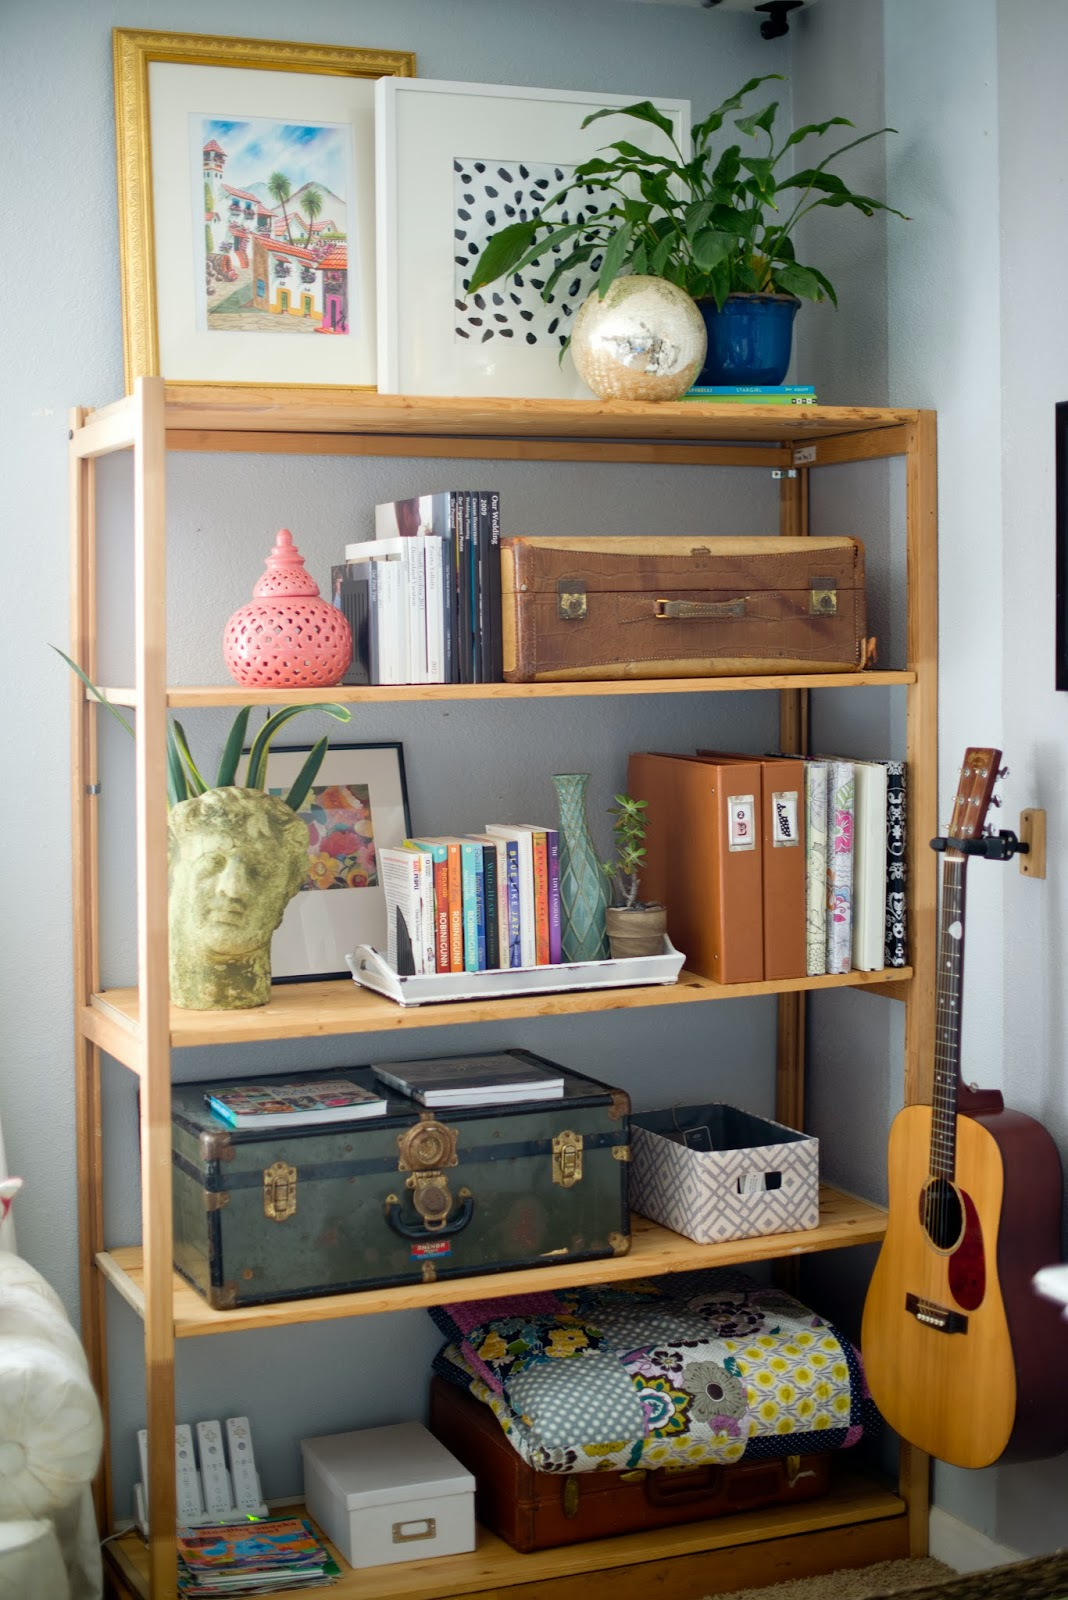 Awesome living room shelving unit